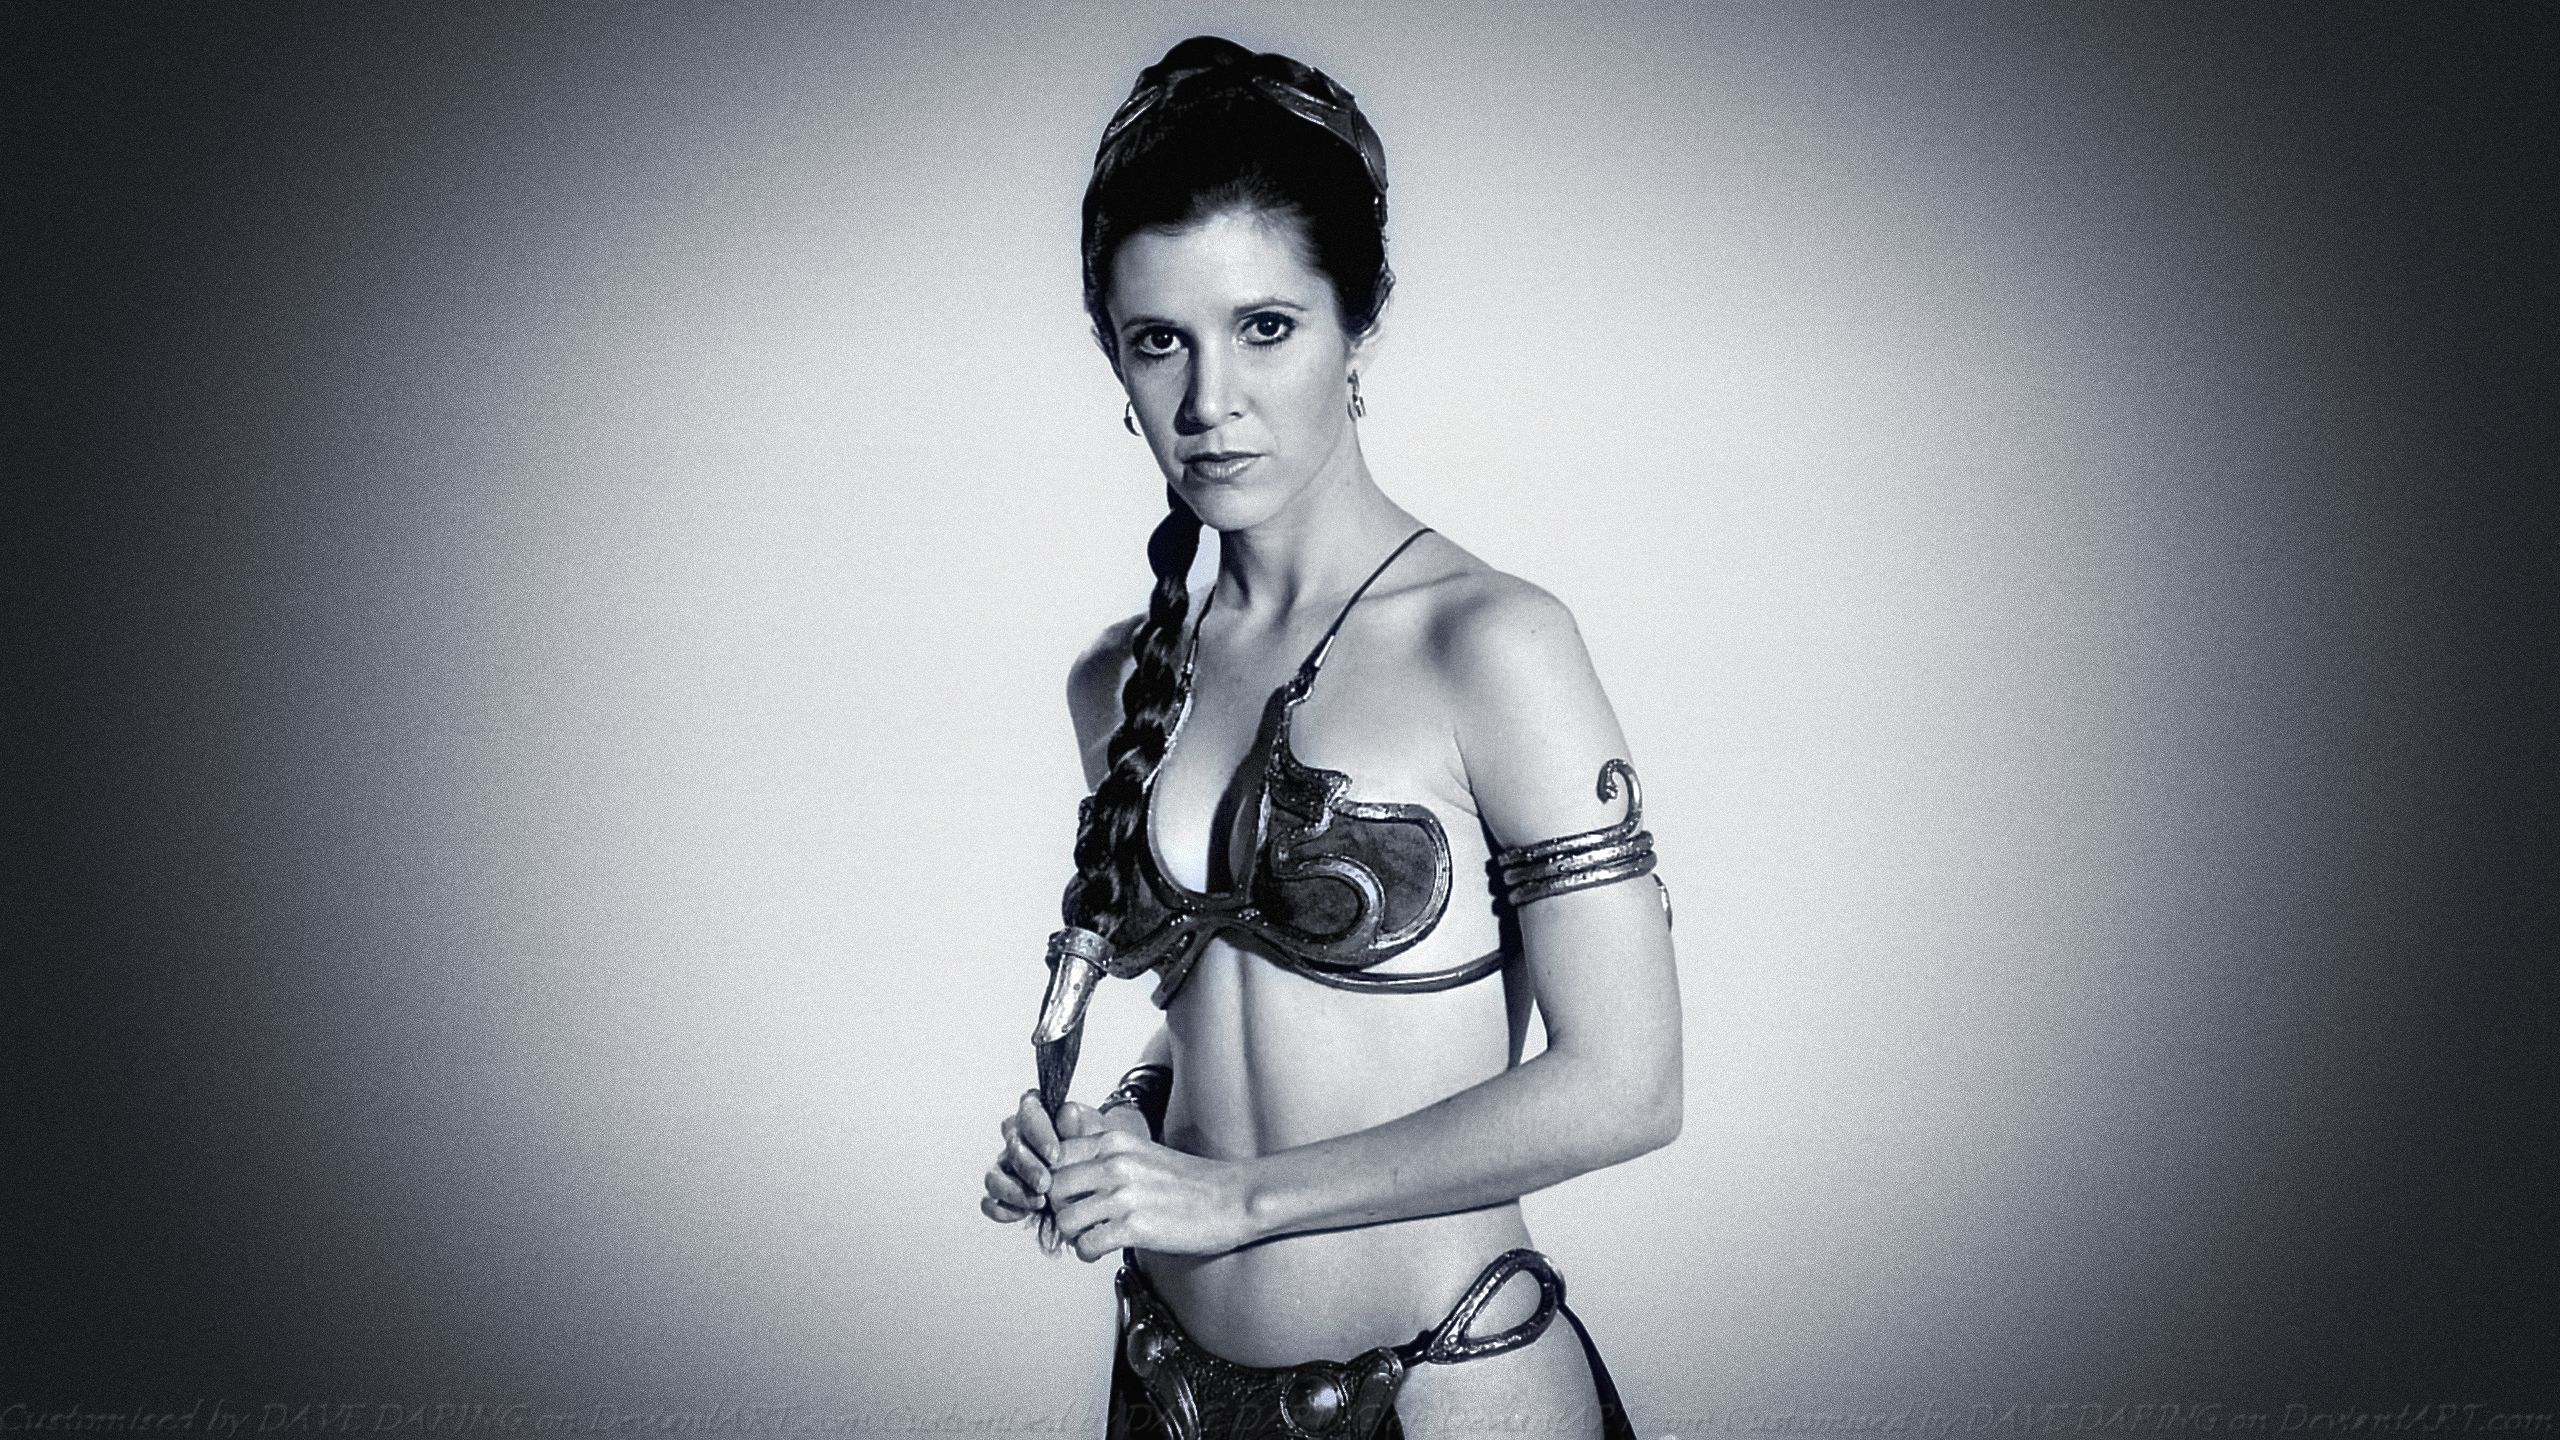 Carrie Fisher Slave Girl Princess XIII by Dave-Daring